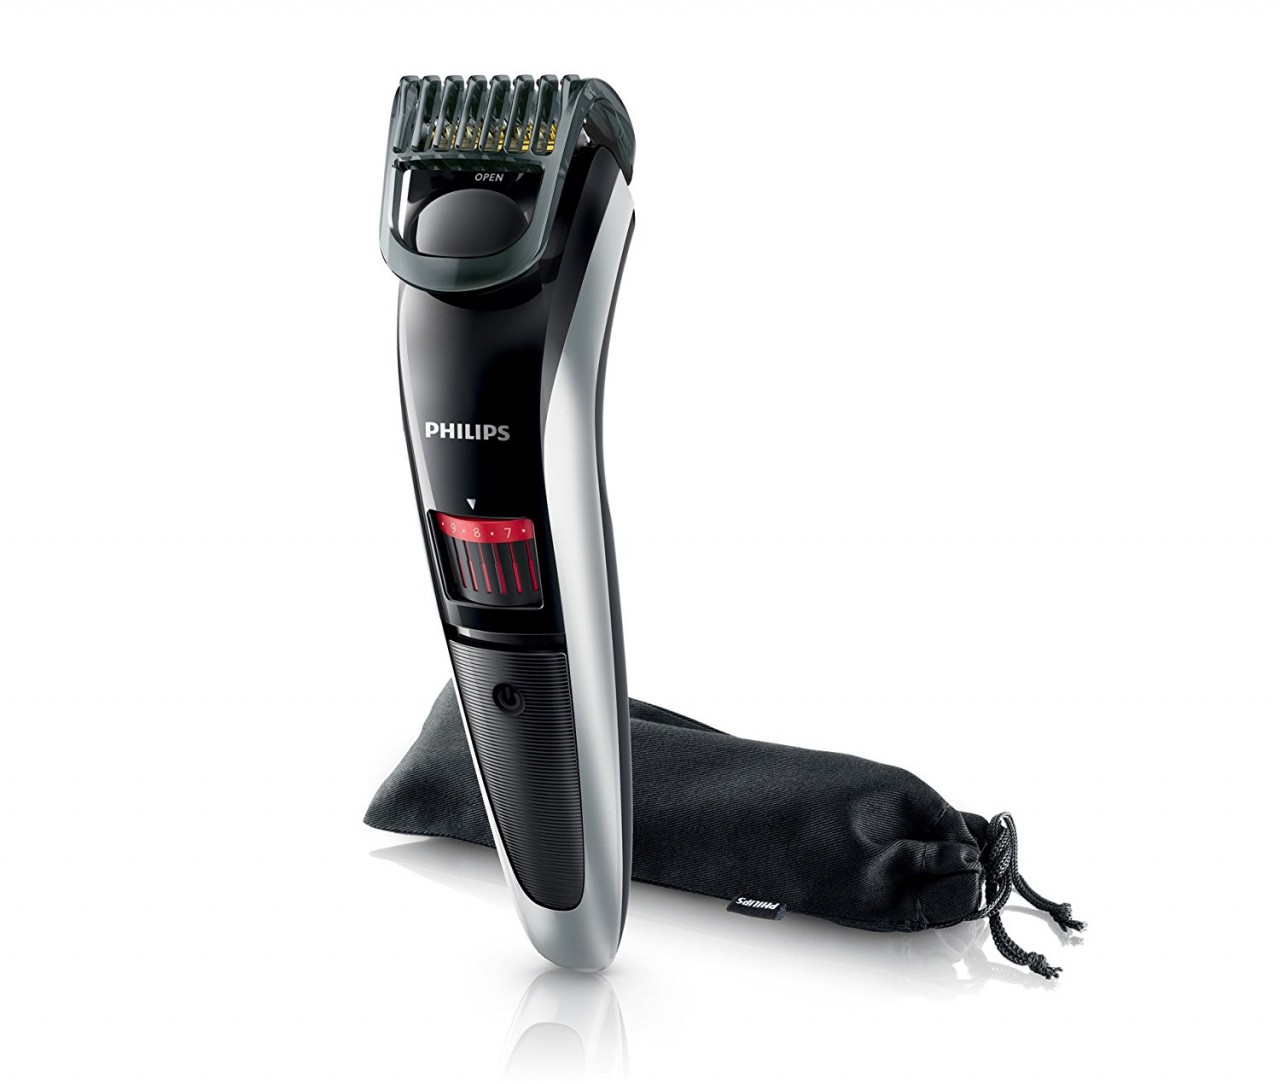 philips qt 4013 beard trimmer price in pakistan. Black Bedroom Furniture Sets. Home Design Ideas